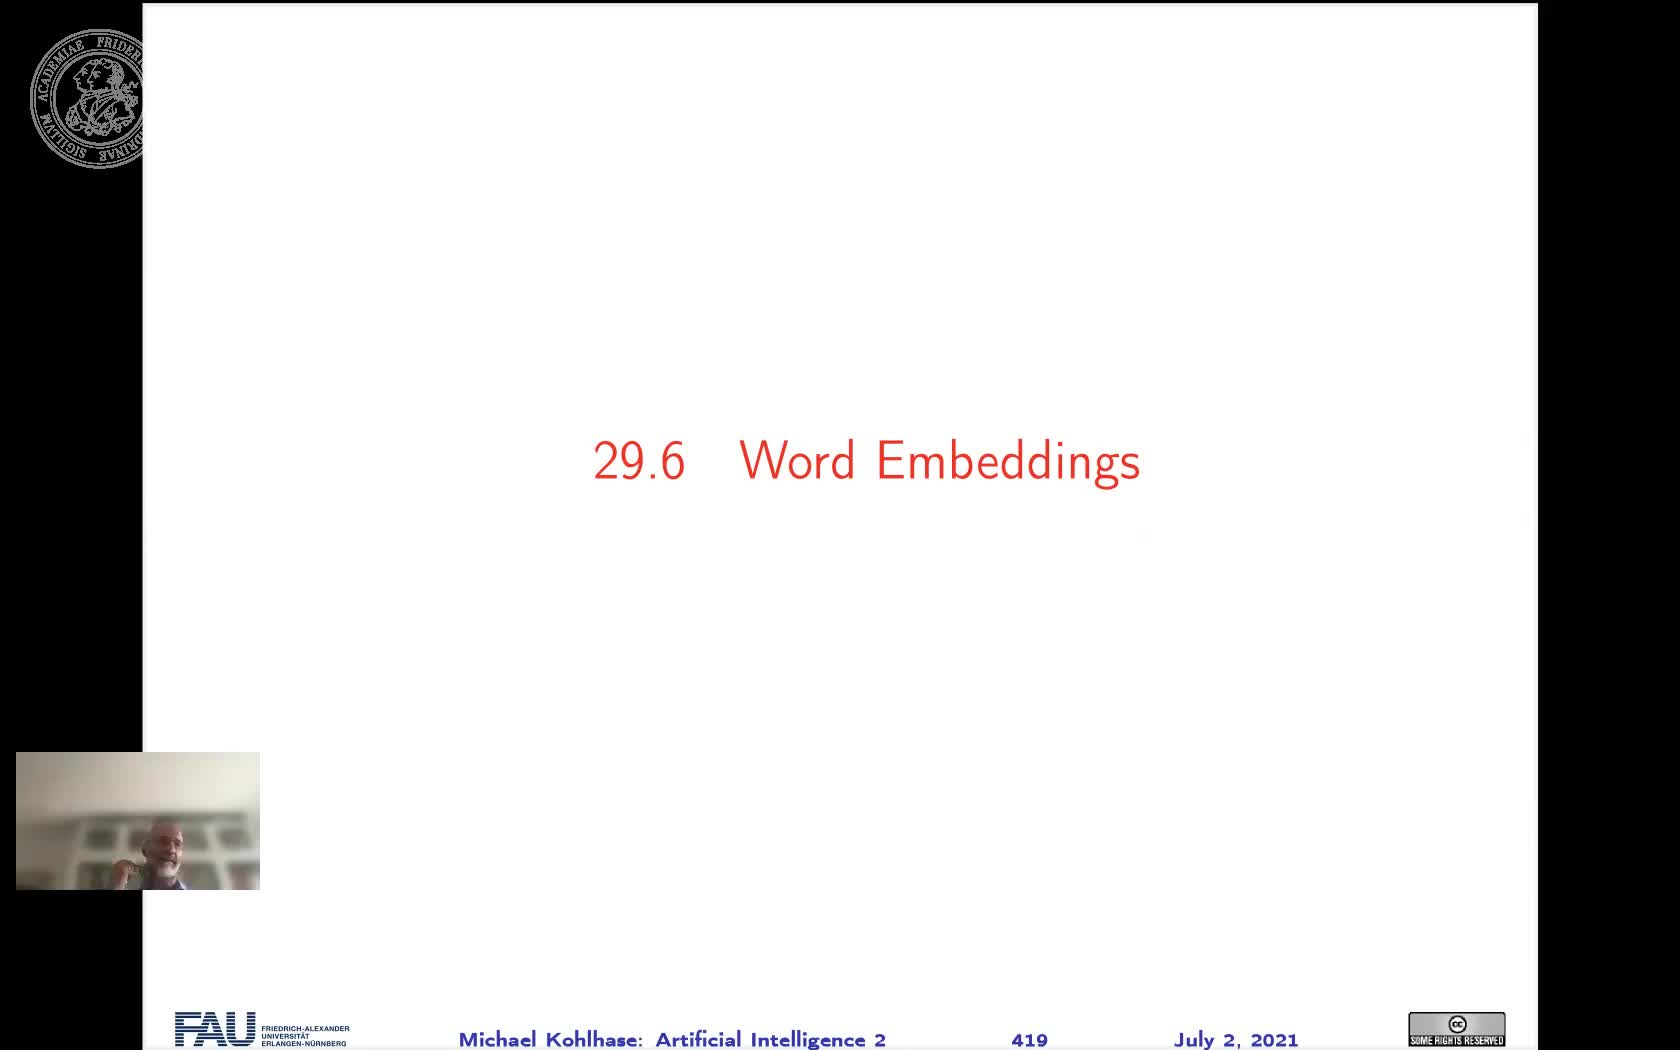 29.6 Word Embeddings preview image